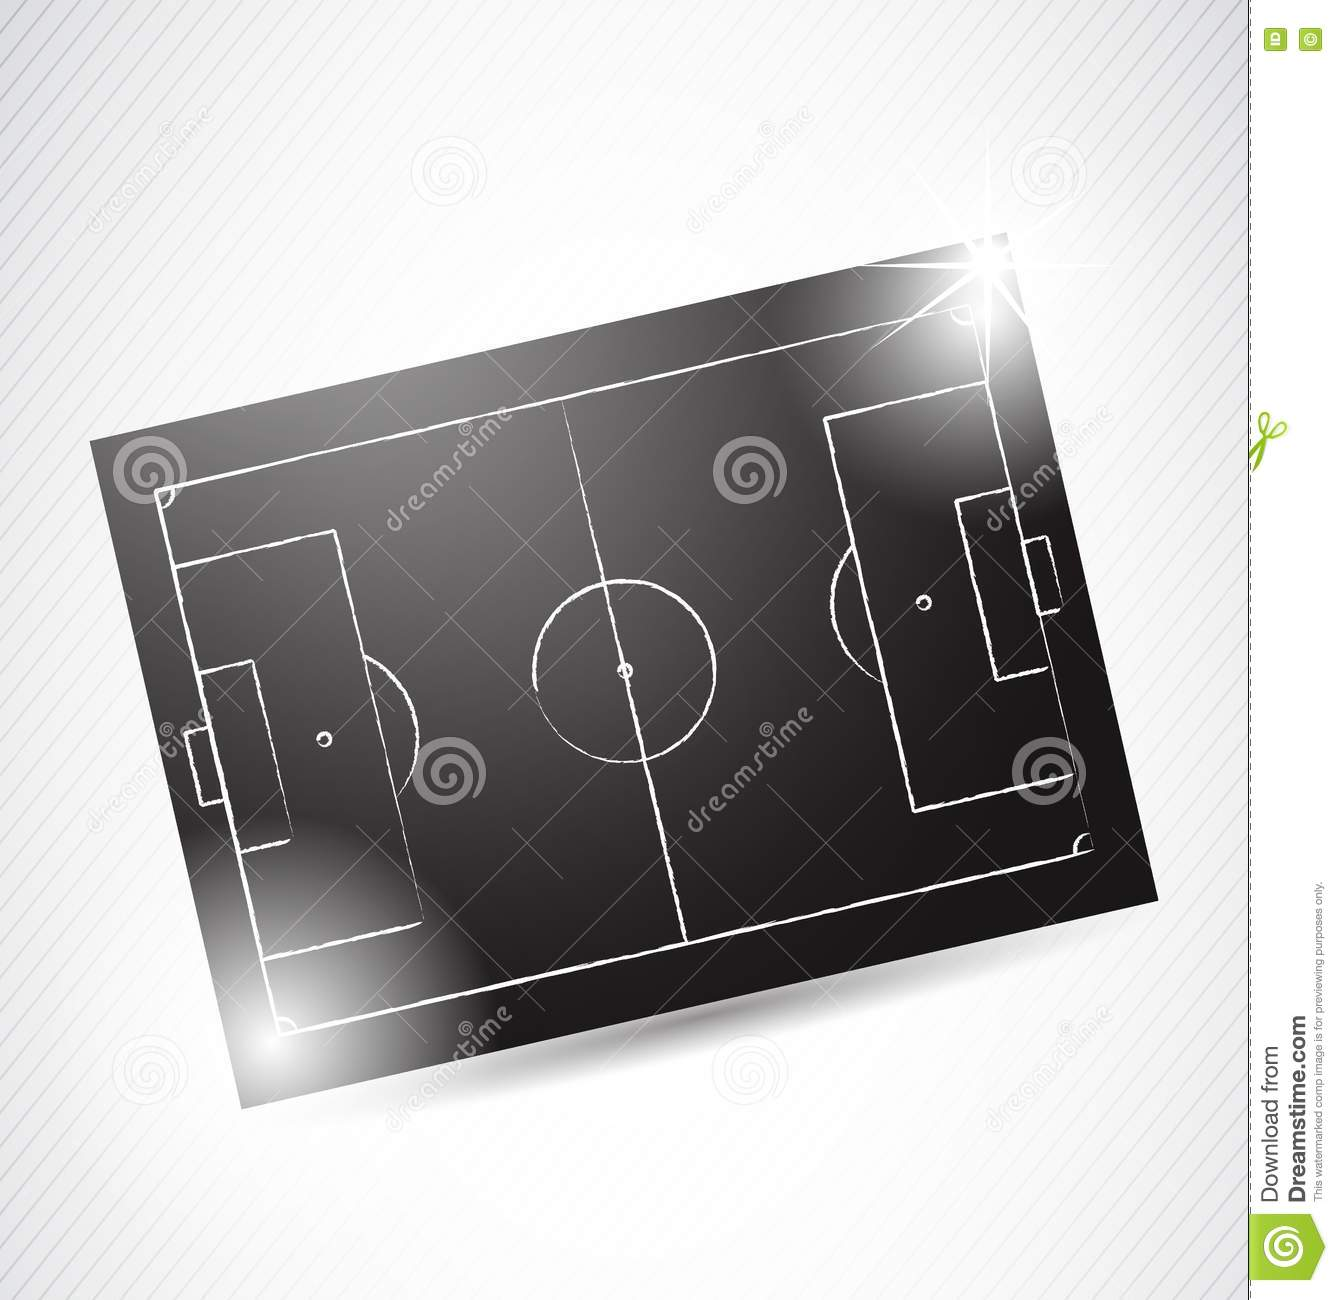 abstract soccer tactics board royalty free stock images